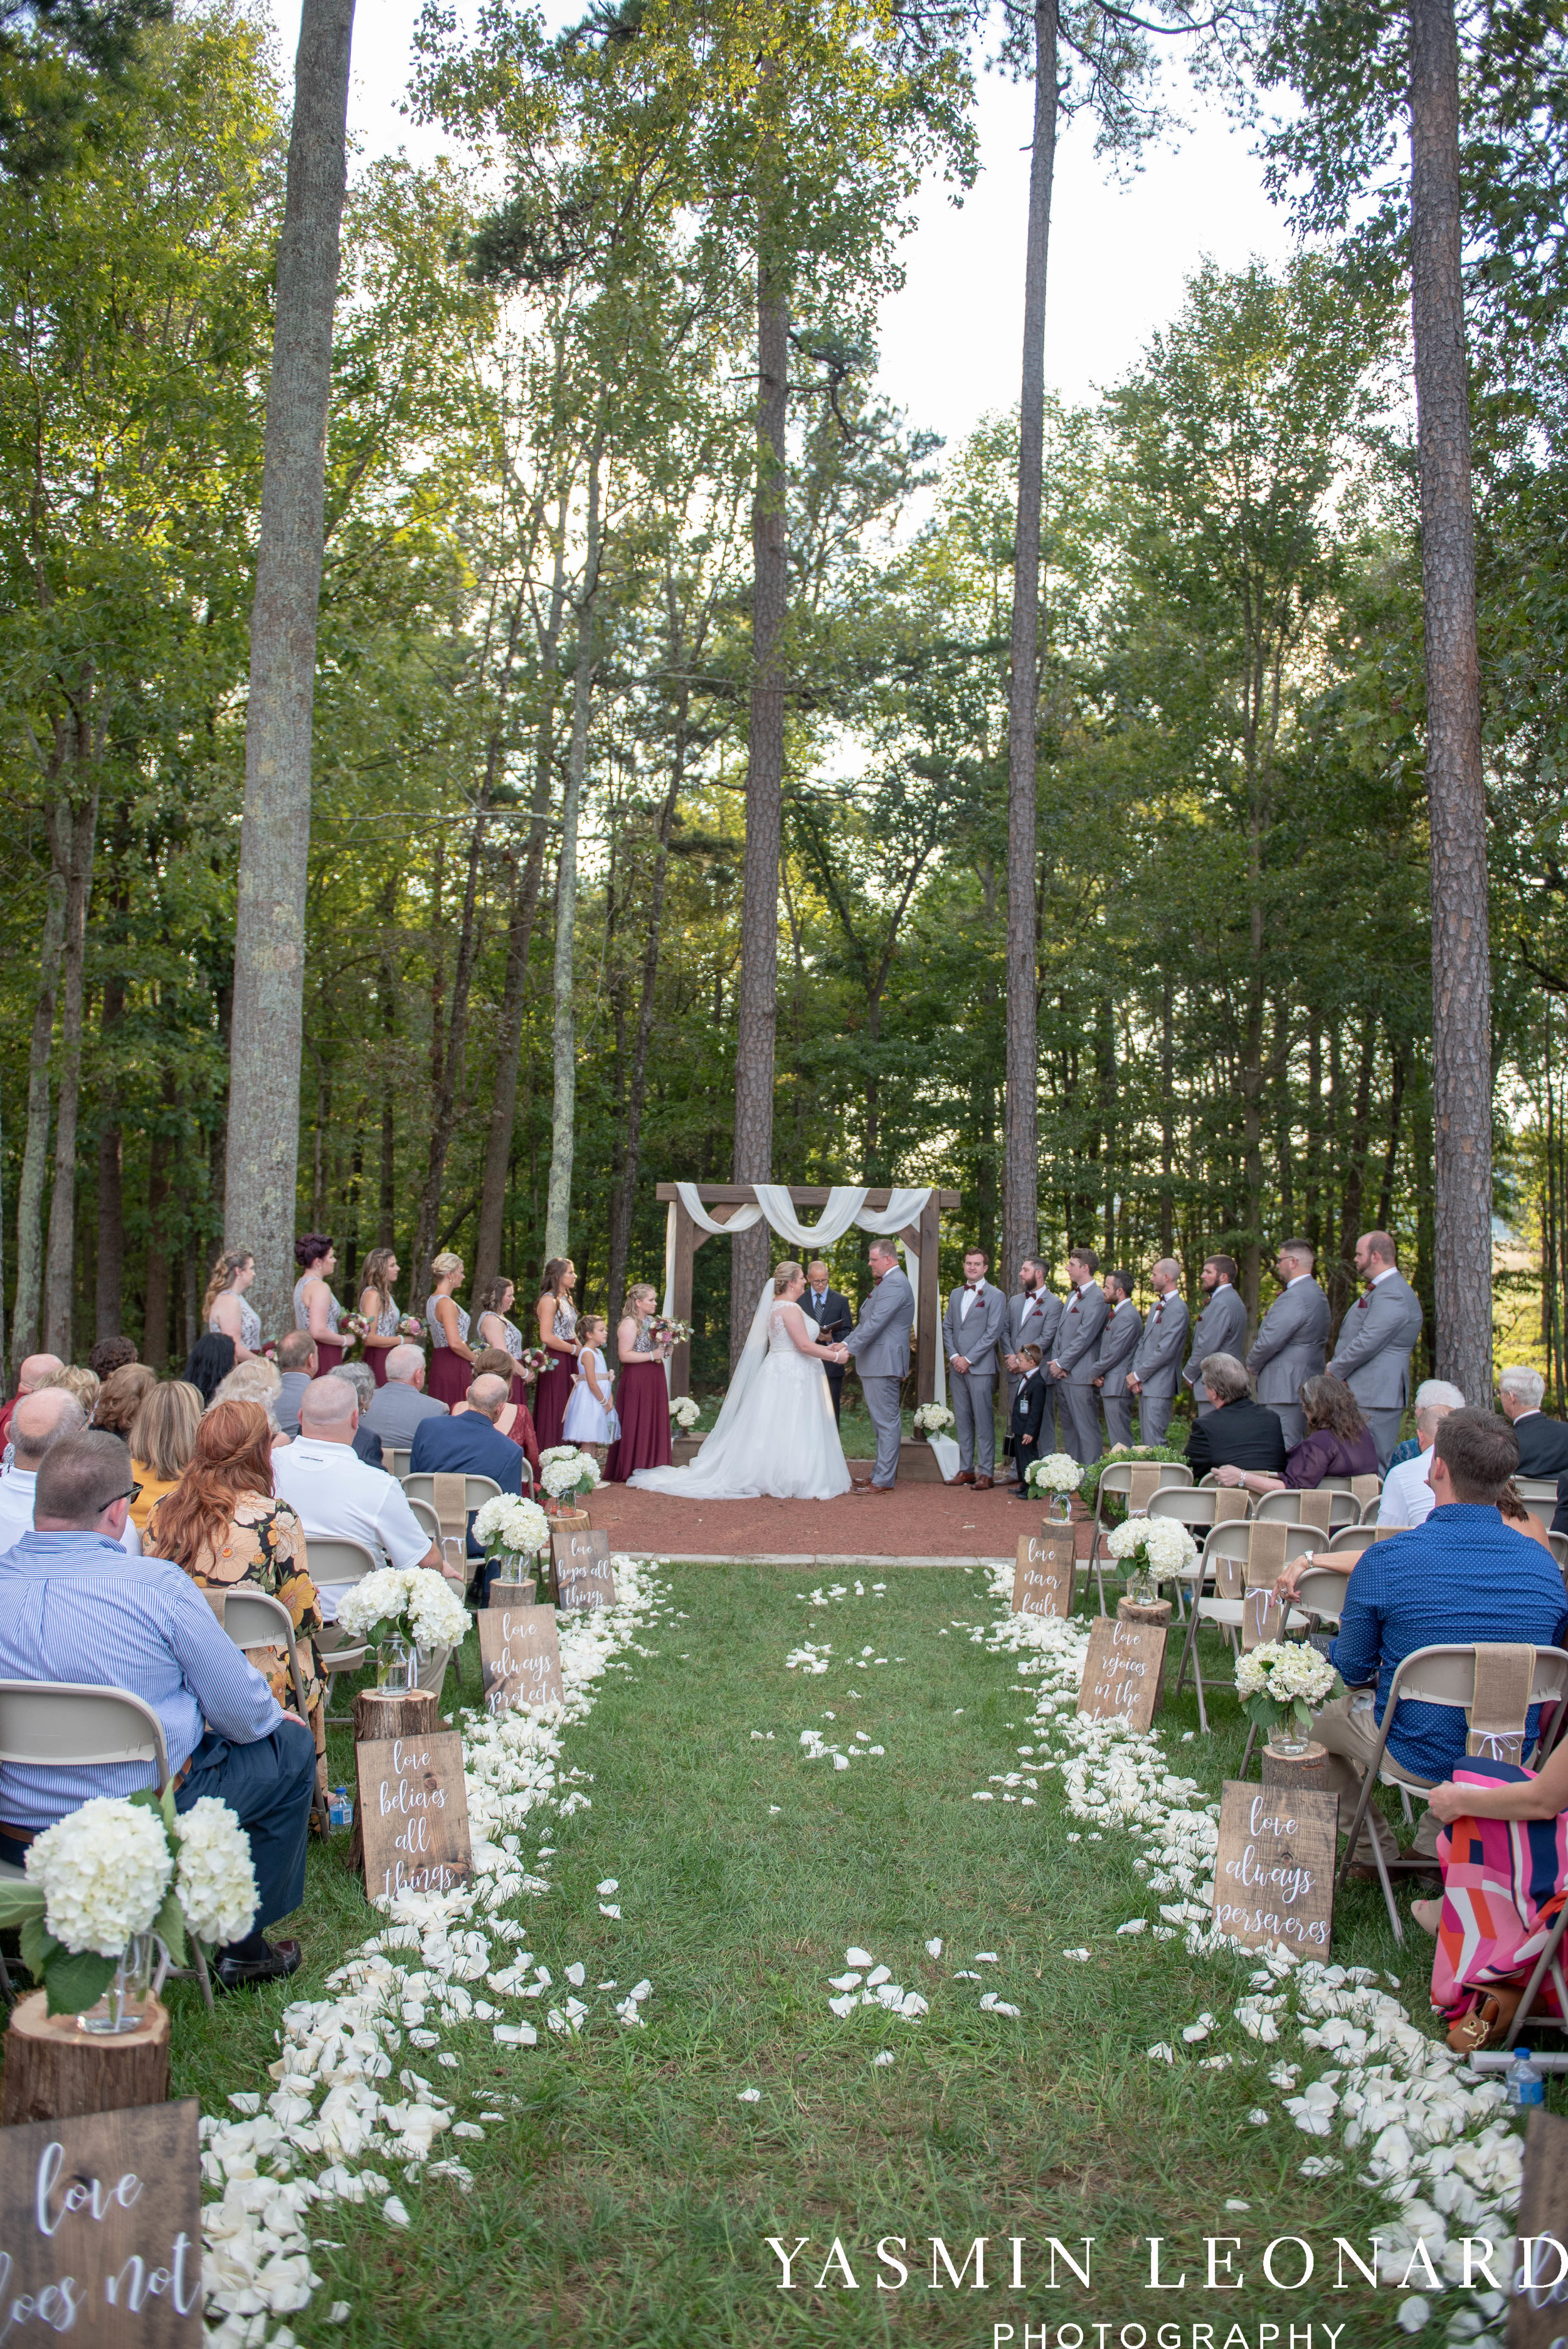 Danner Farms - NC Wedding Venues - NC Barns - Statesville NC - NC Wedding Photographer - High Point Wedding Photographer - Yasmin Leonard Photography-34.jpg